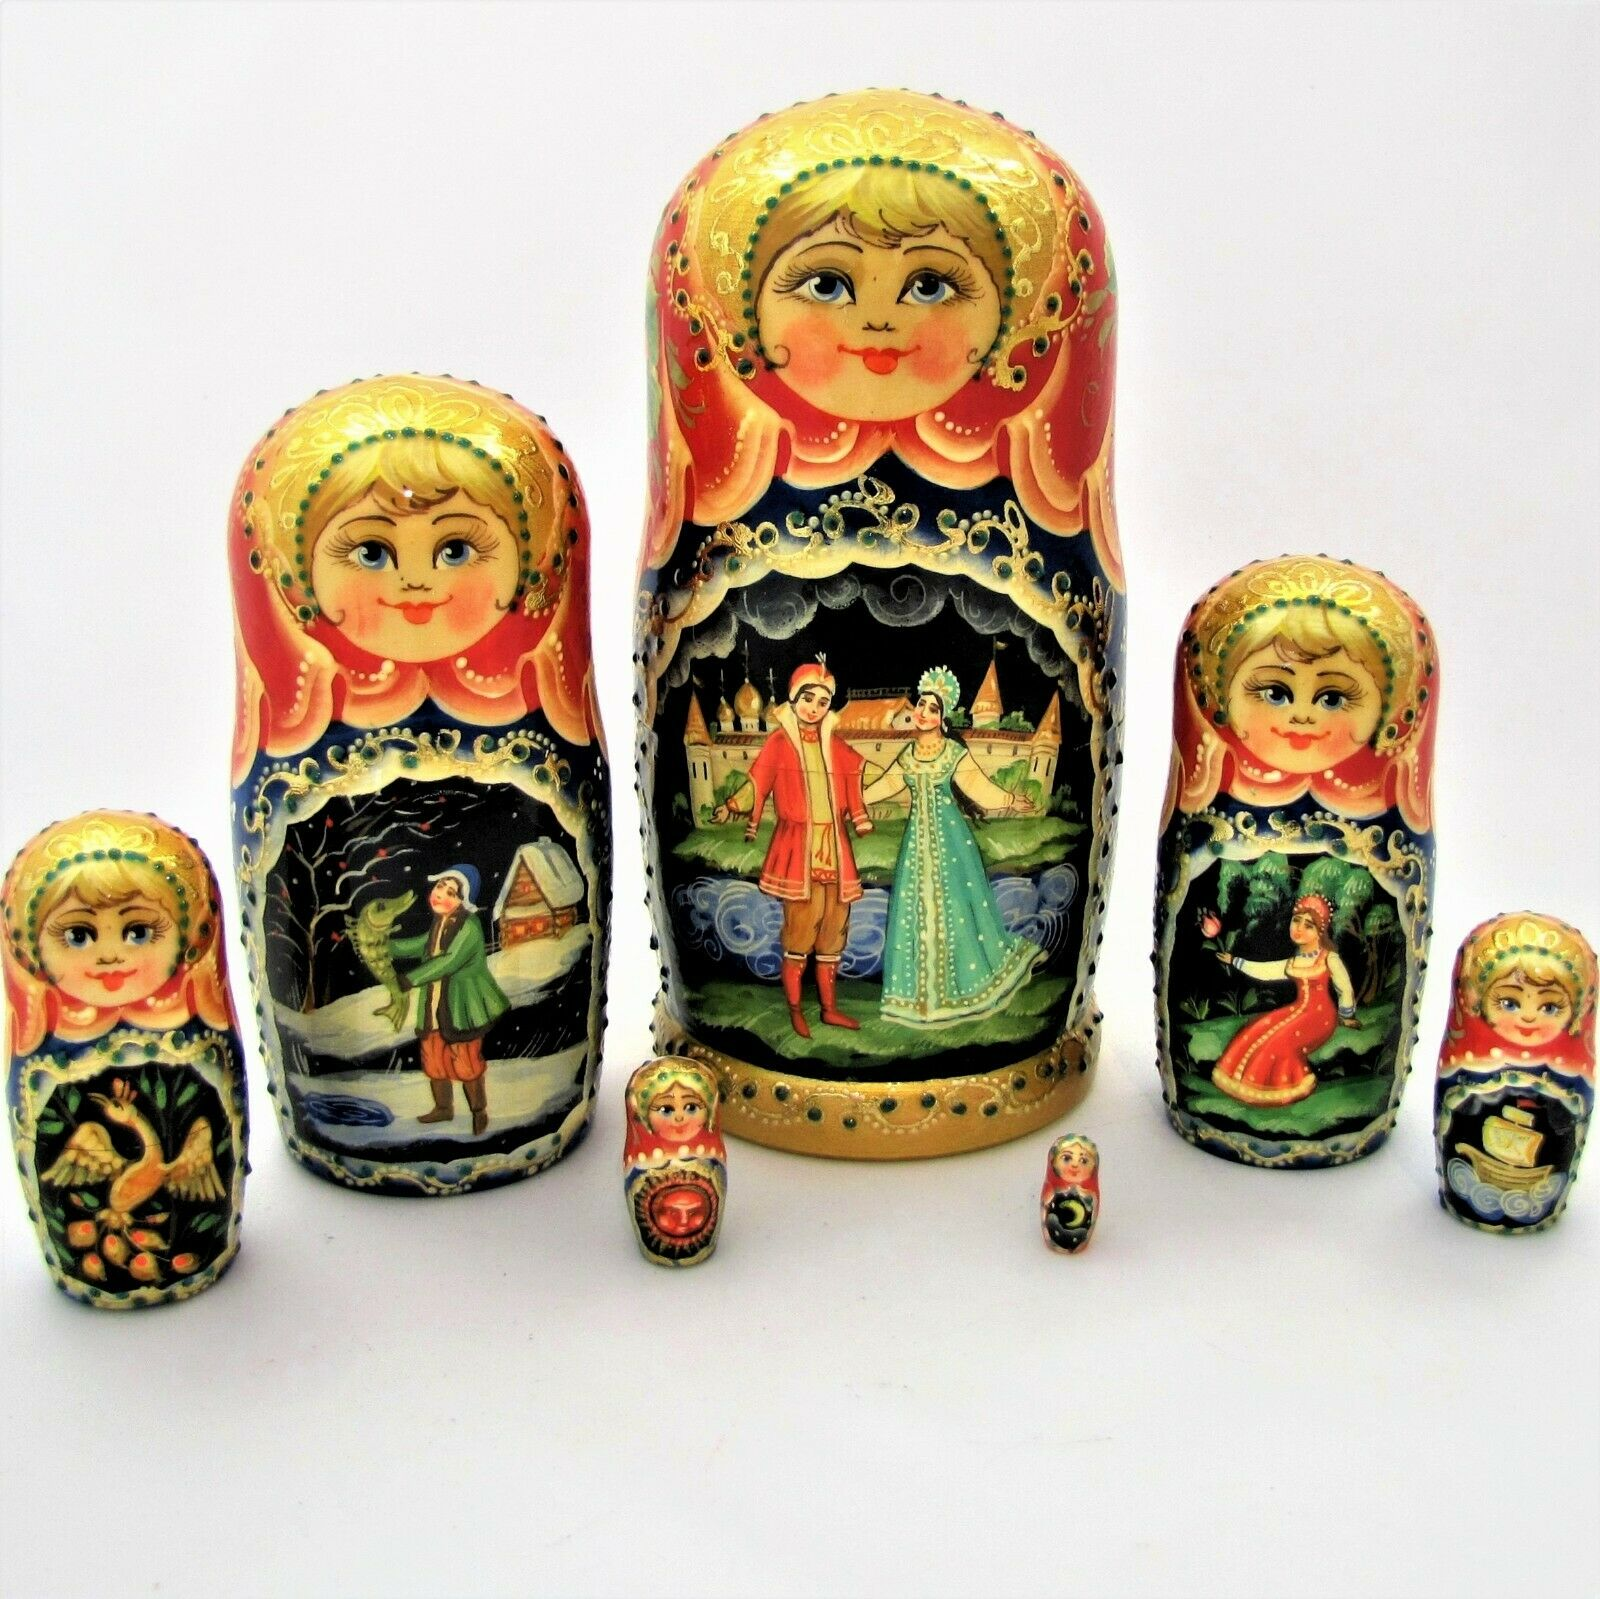 7 Poupées russes H22 peint main signé Matriundka Gigognes Nested Doll Matrioshka